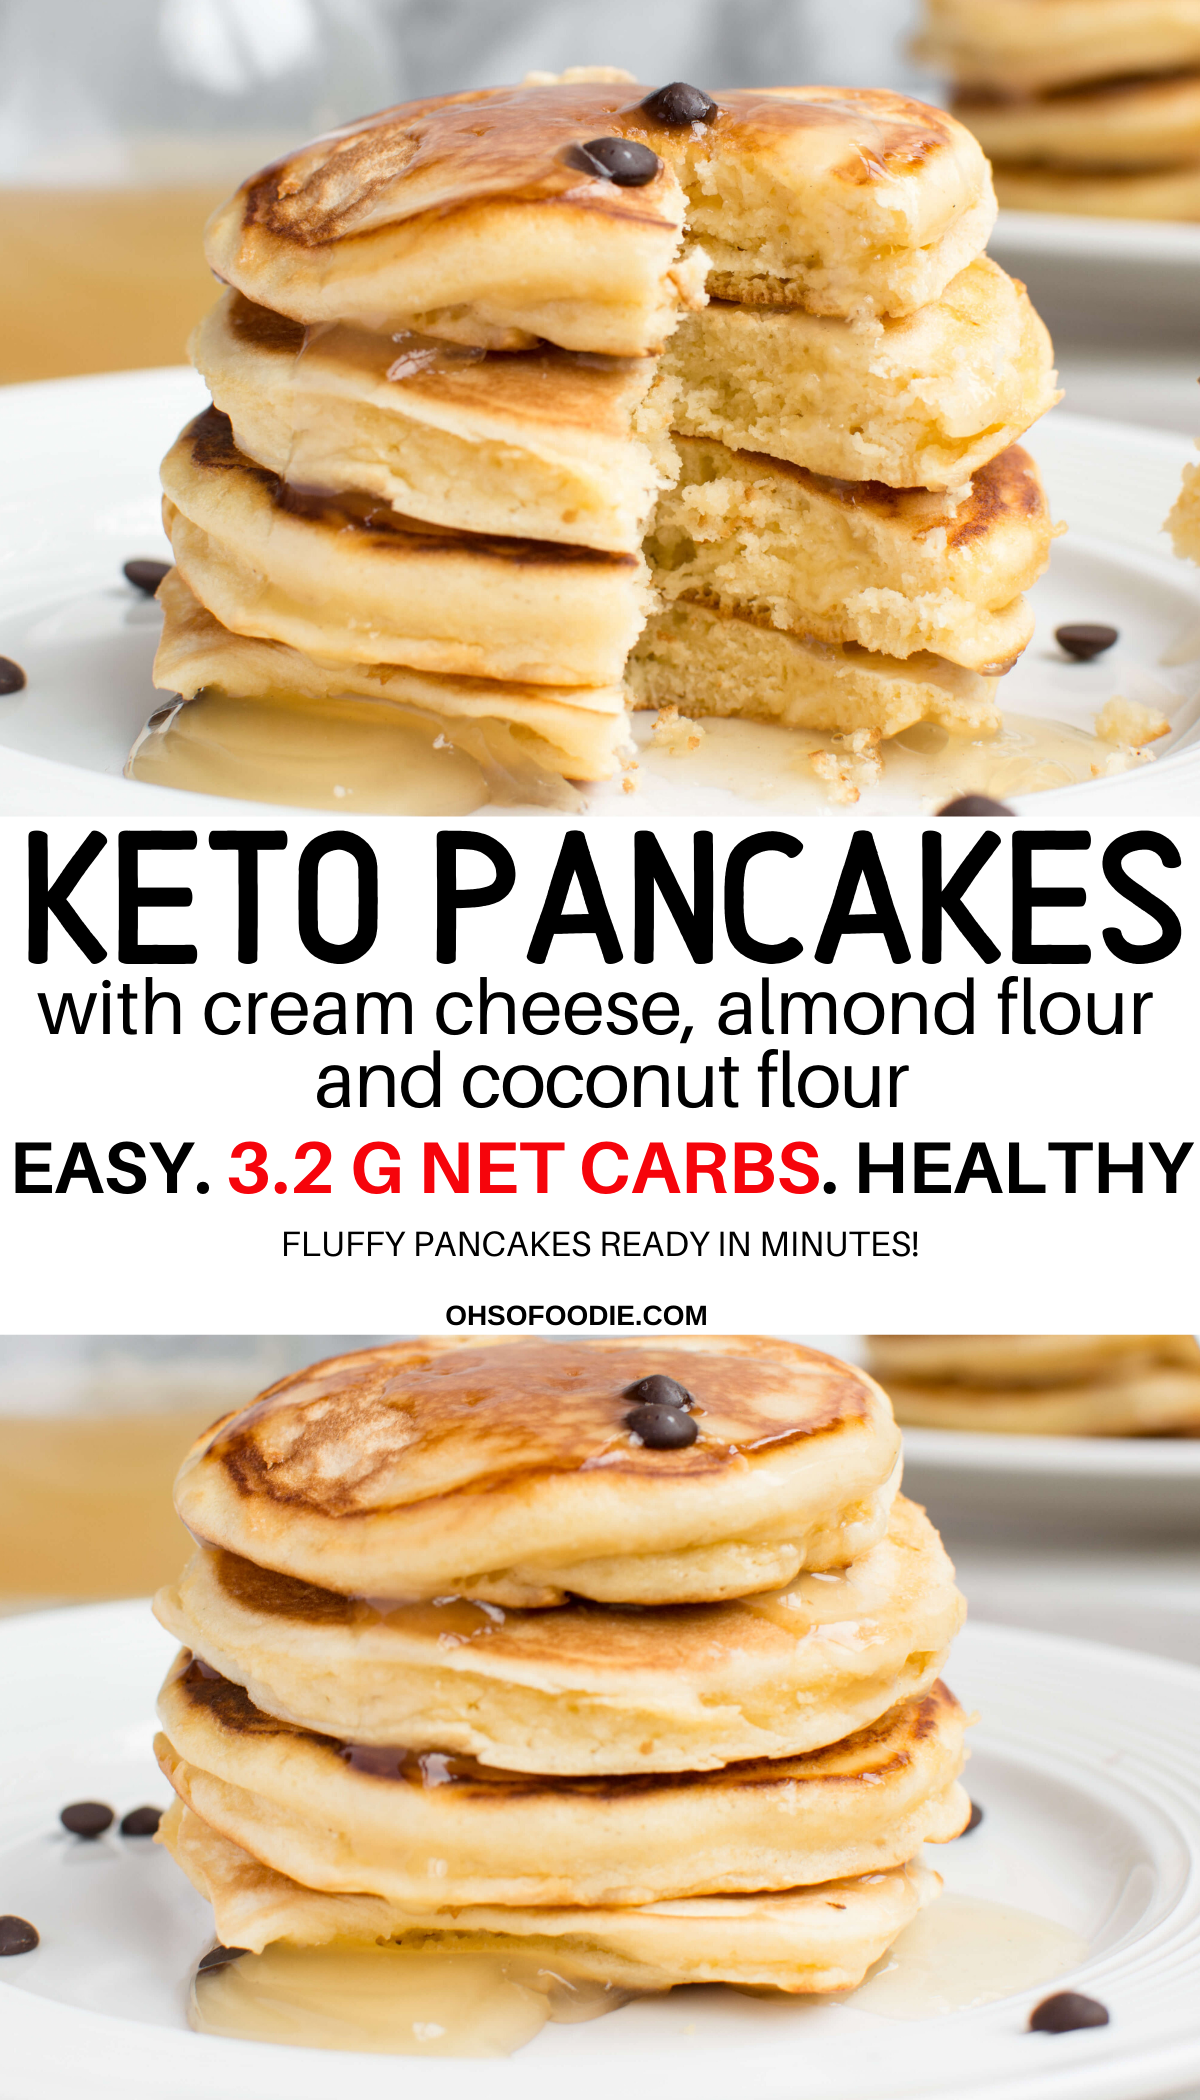 Fluffy Keto Pancakes With Cream Cheese Coconut Flour Almond Flour Recipe Coconut Flour Pancakes Cream Cheese Pancakes Keto Recipes Easy